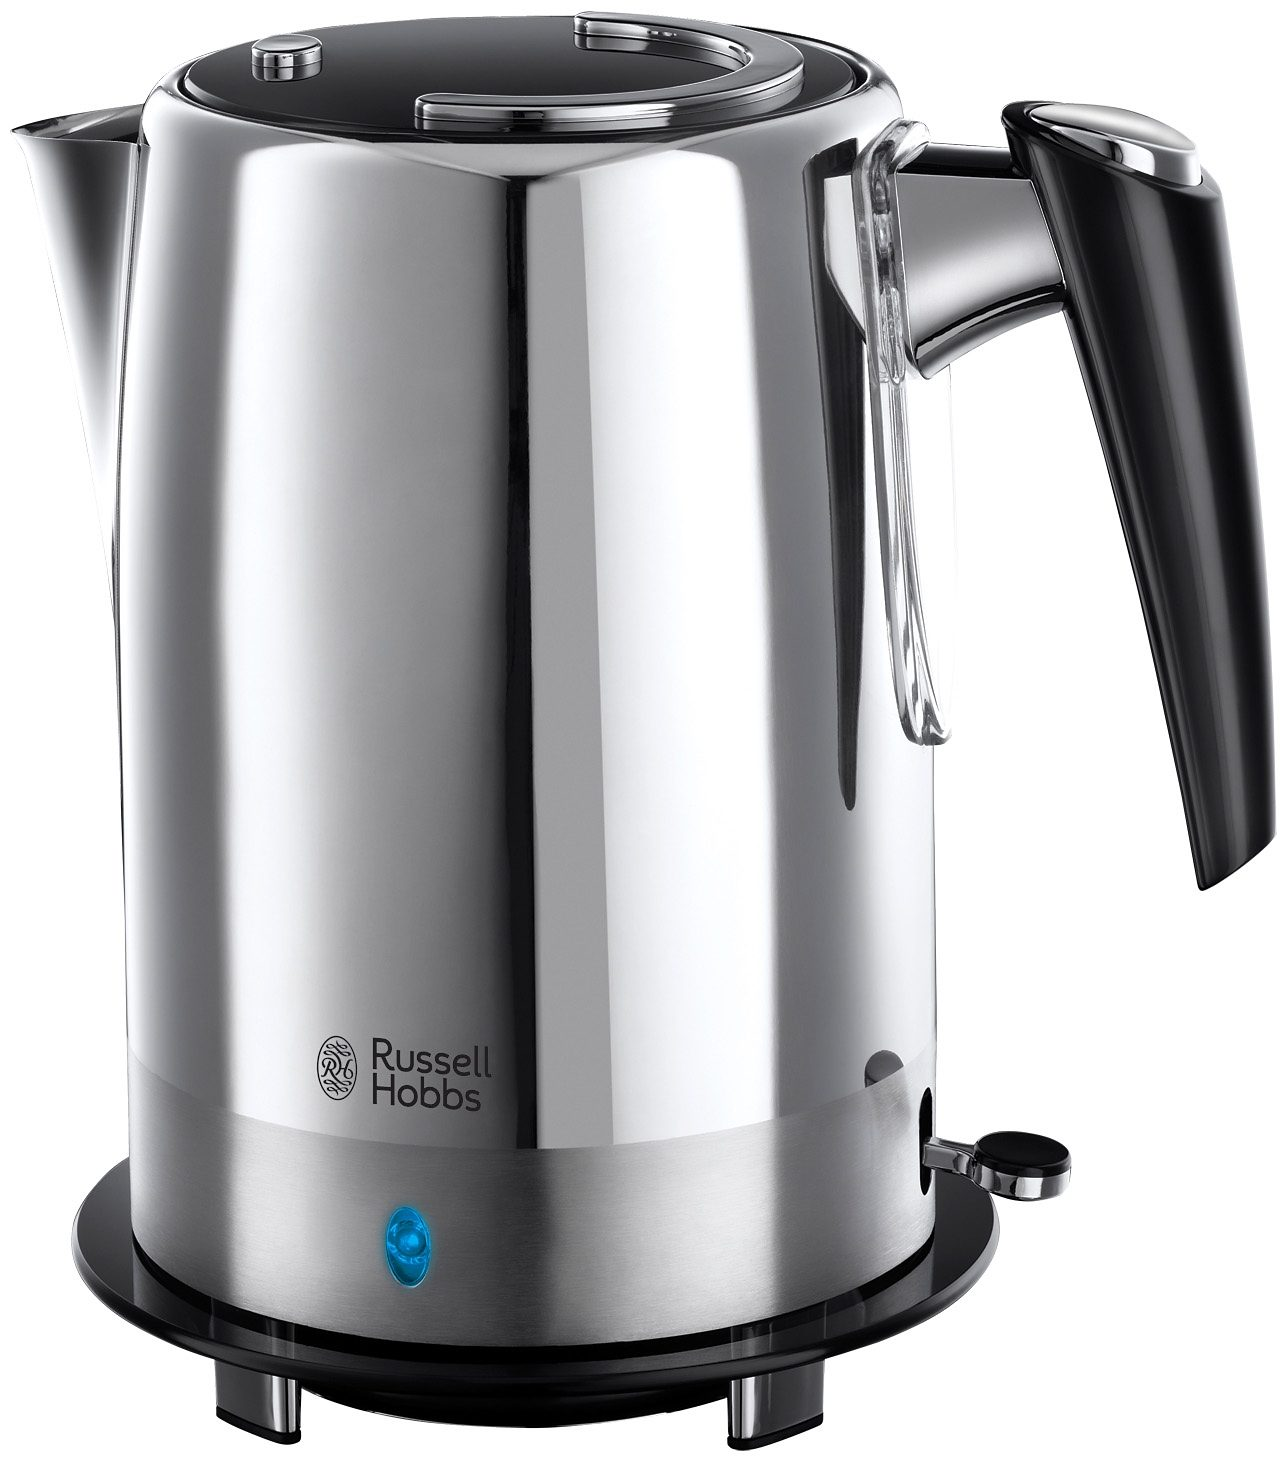 Russell Hobbs Wasserkocher Black Glass 19251-70, 1,7 Liter, 2400 Watt